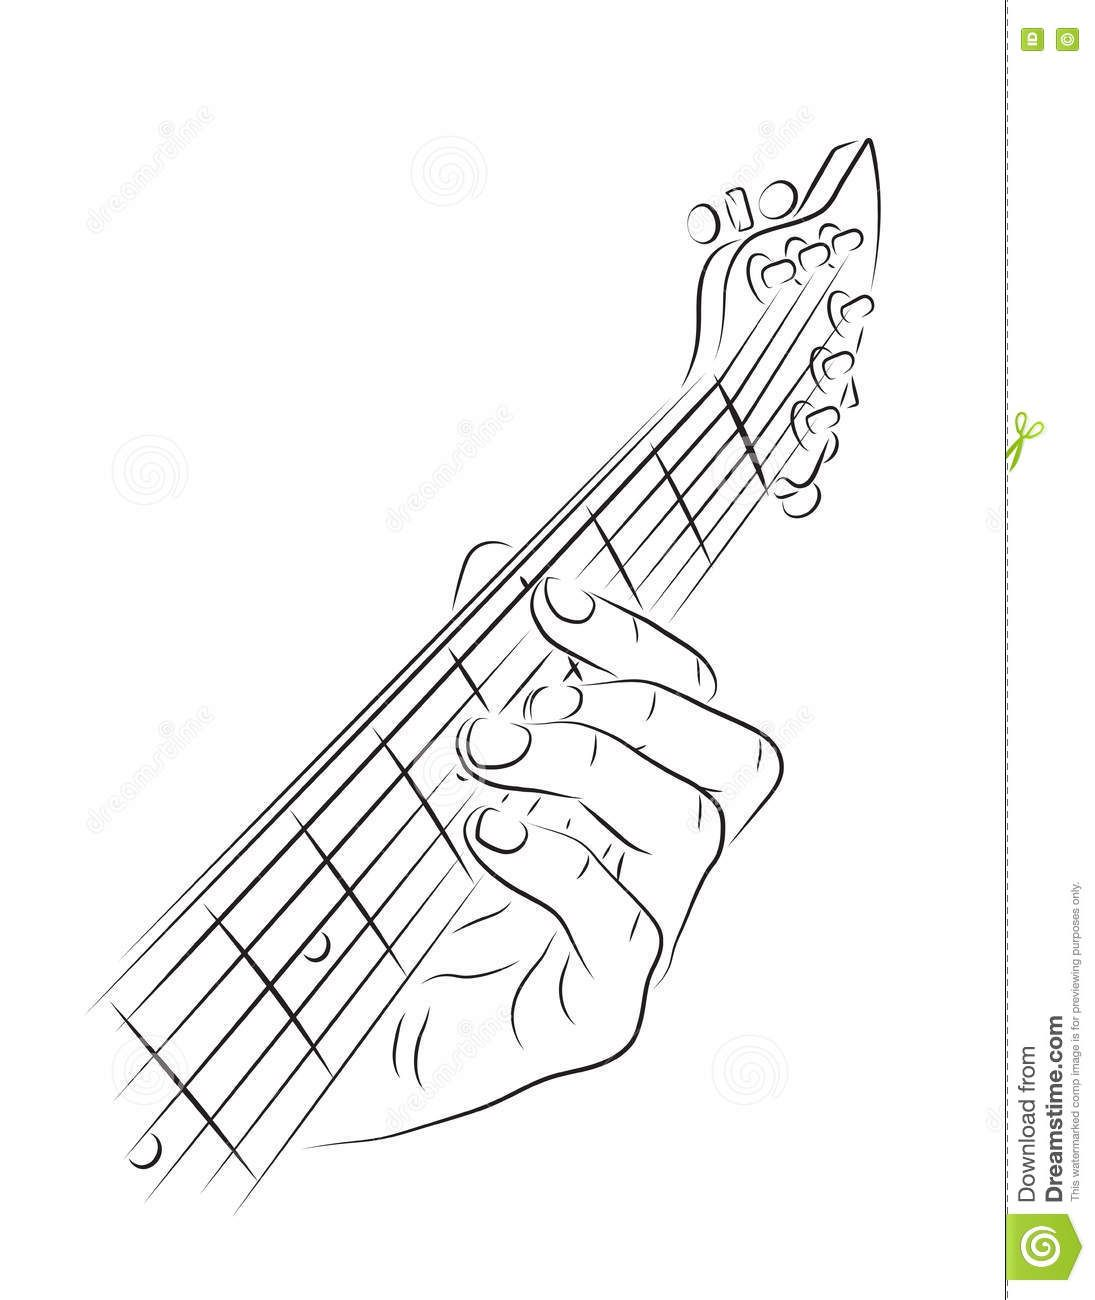 Image result for line drawings of guitar chords